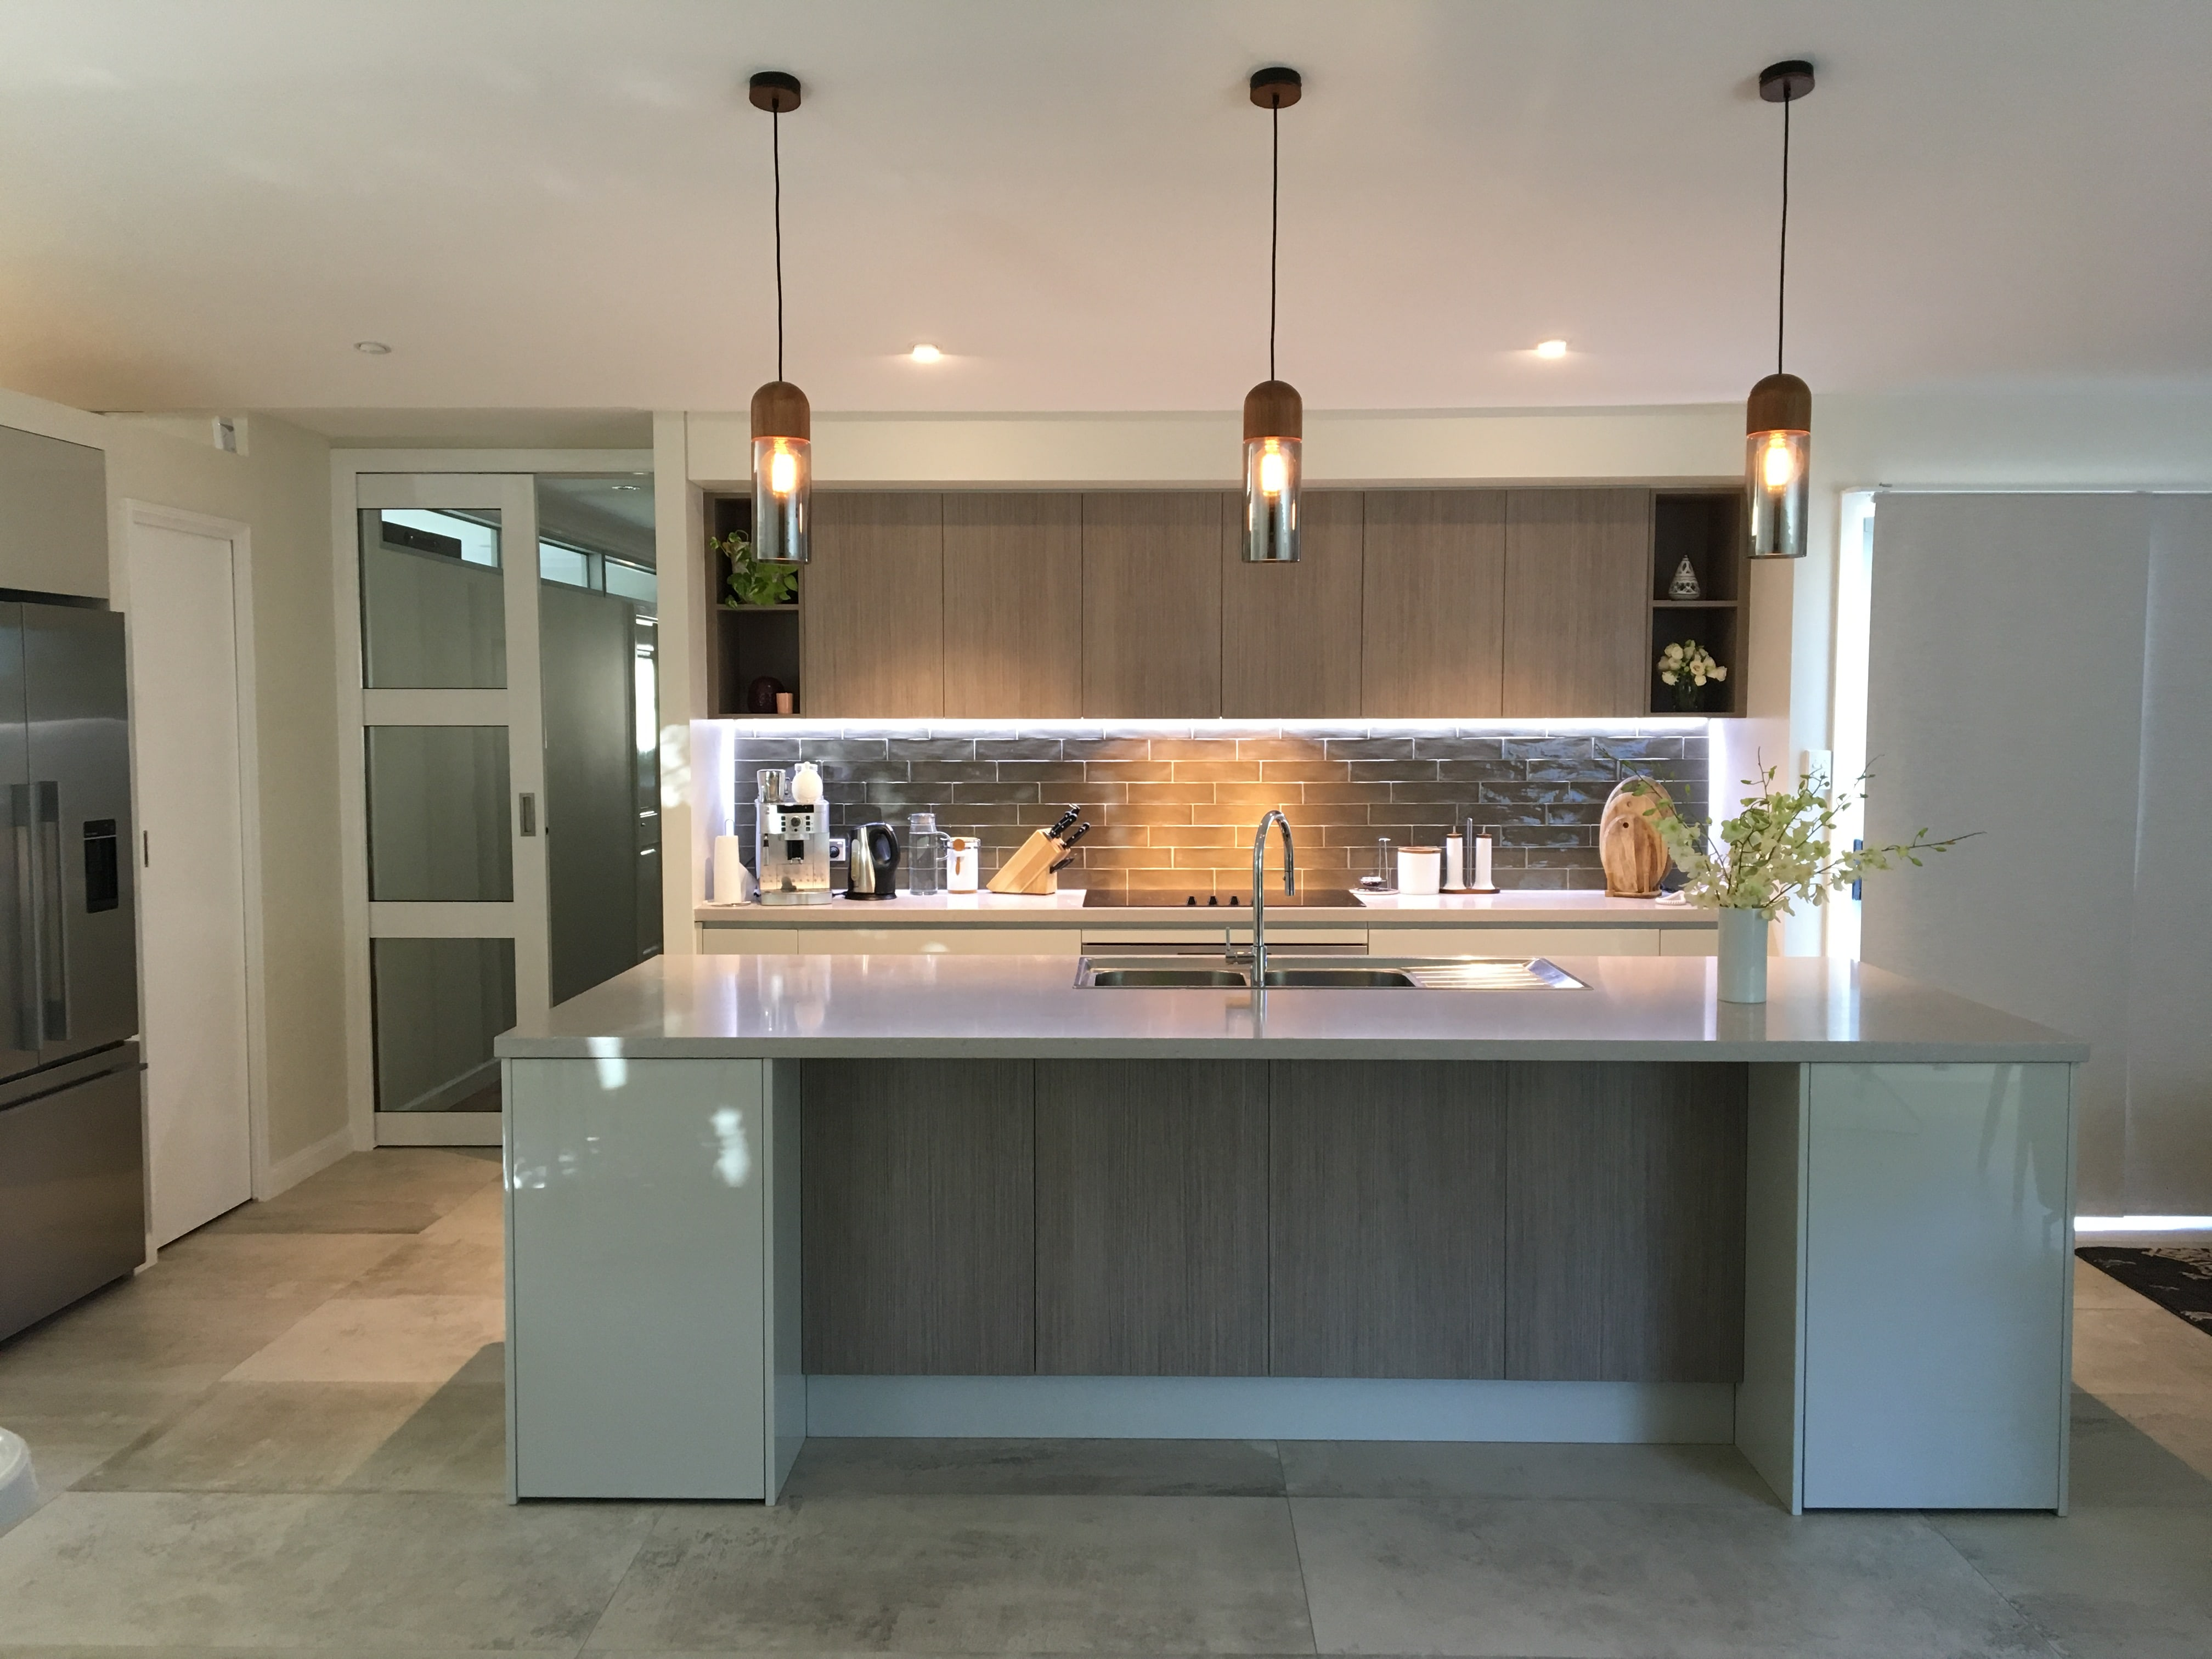 Sydney kitchens & Bathrooms